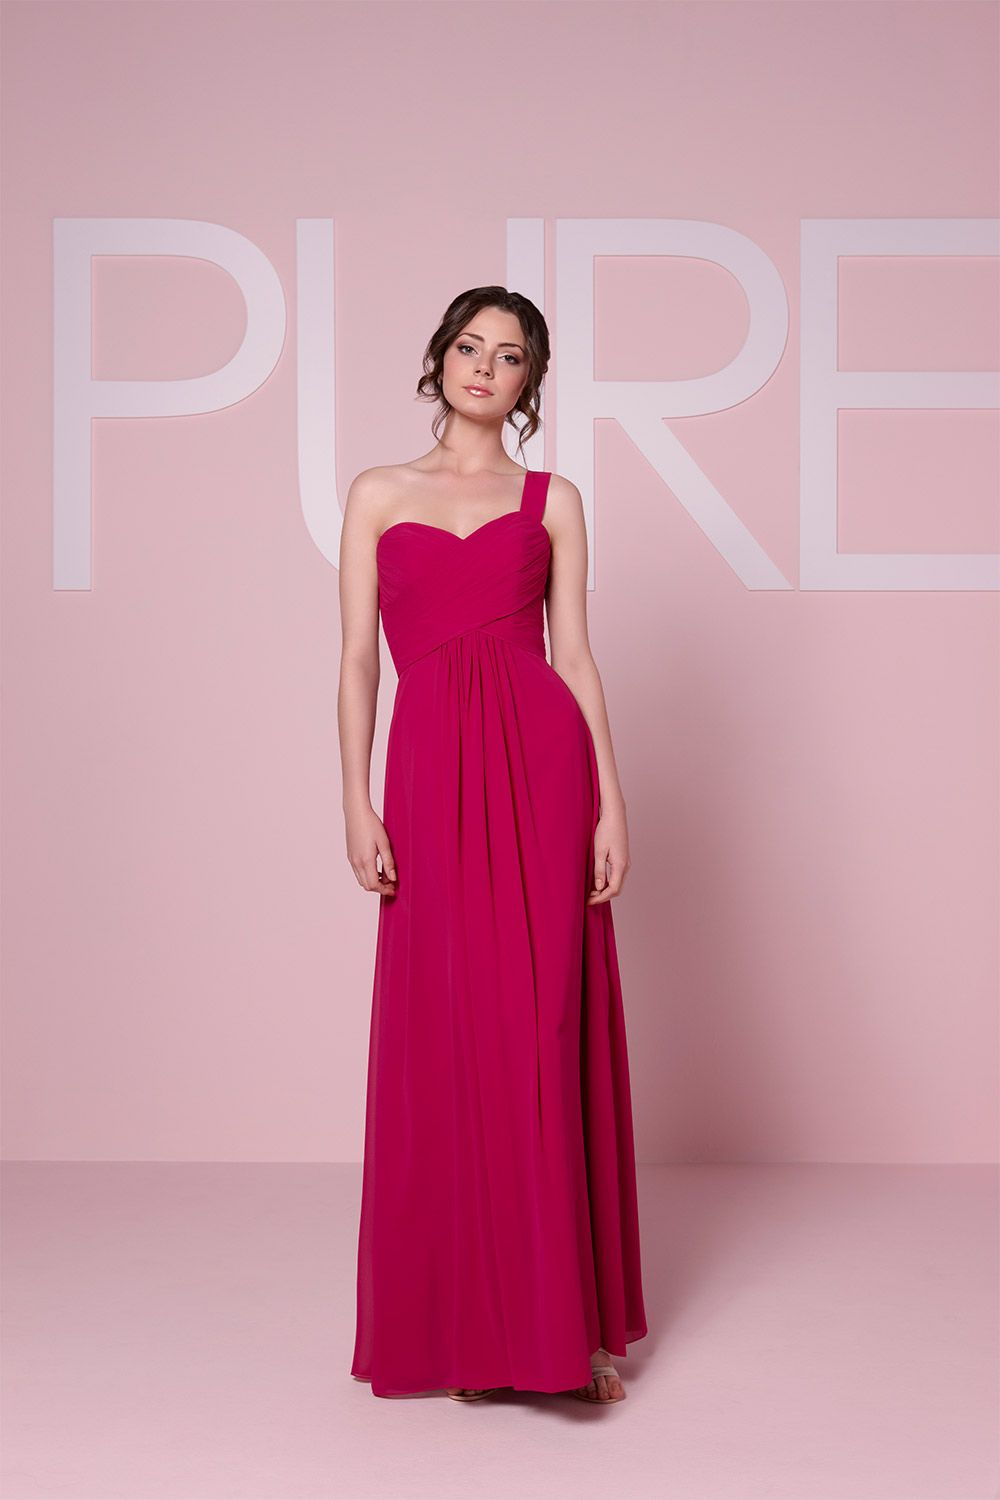 This asymmetrical bridesmaid dress from Pure Bridesmaid has a ...